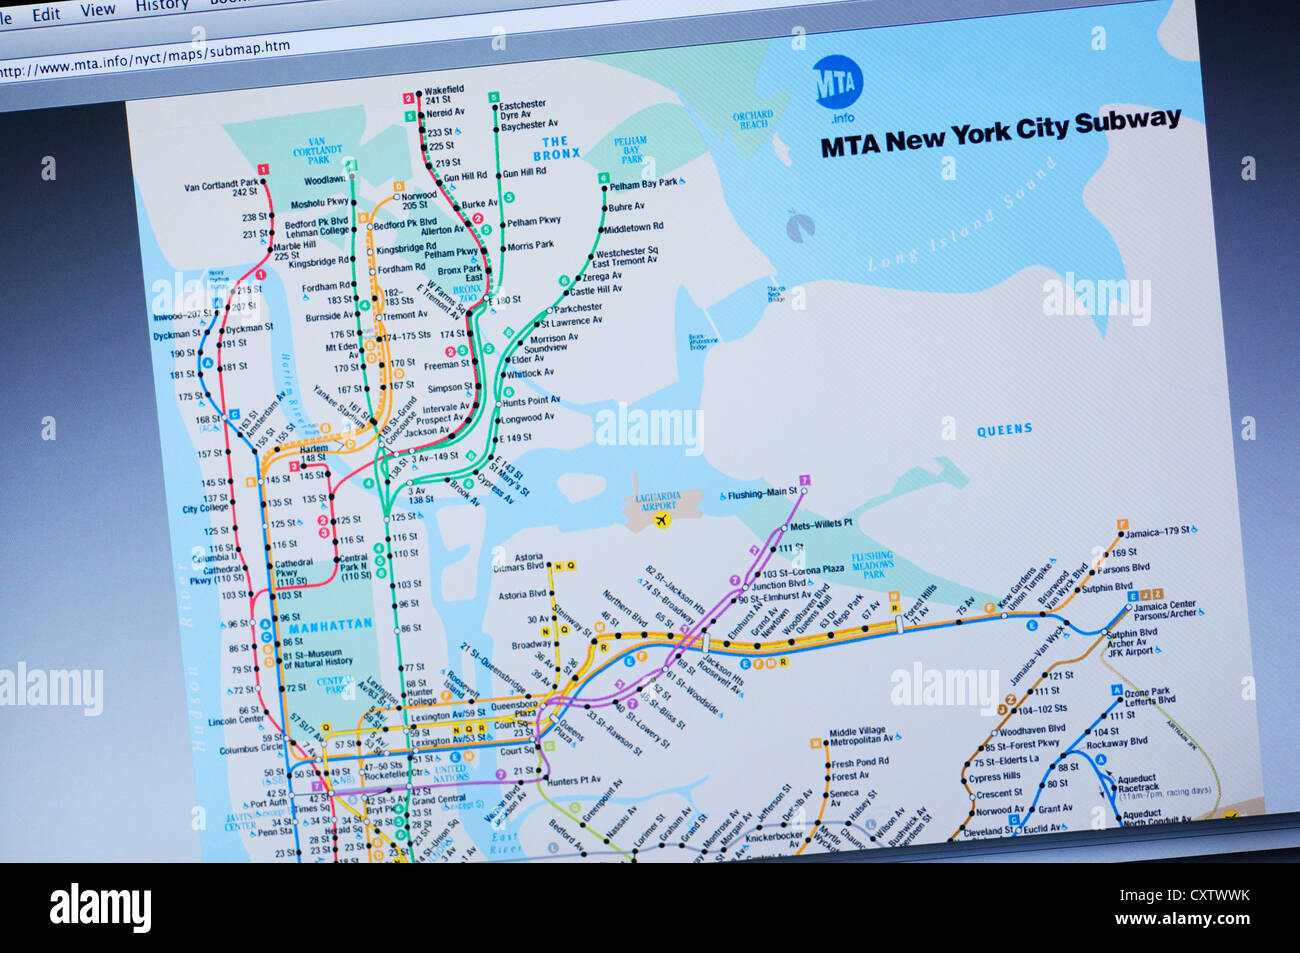 New York City Metro Map Stock Photos & New York City Metro